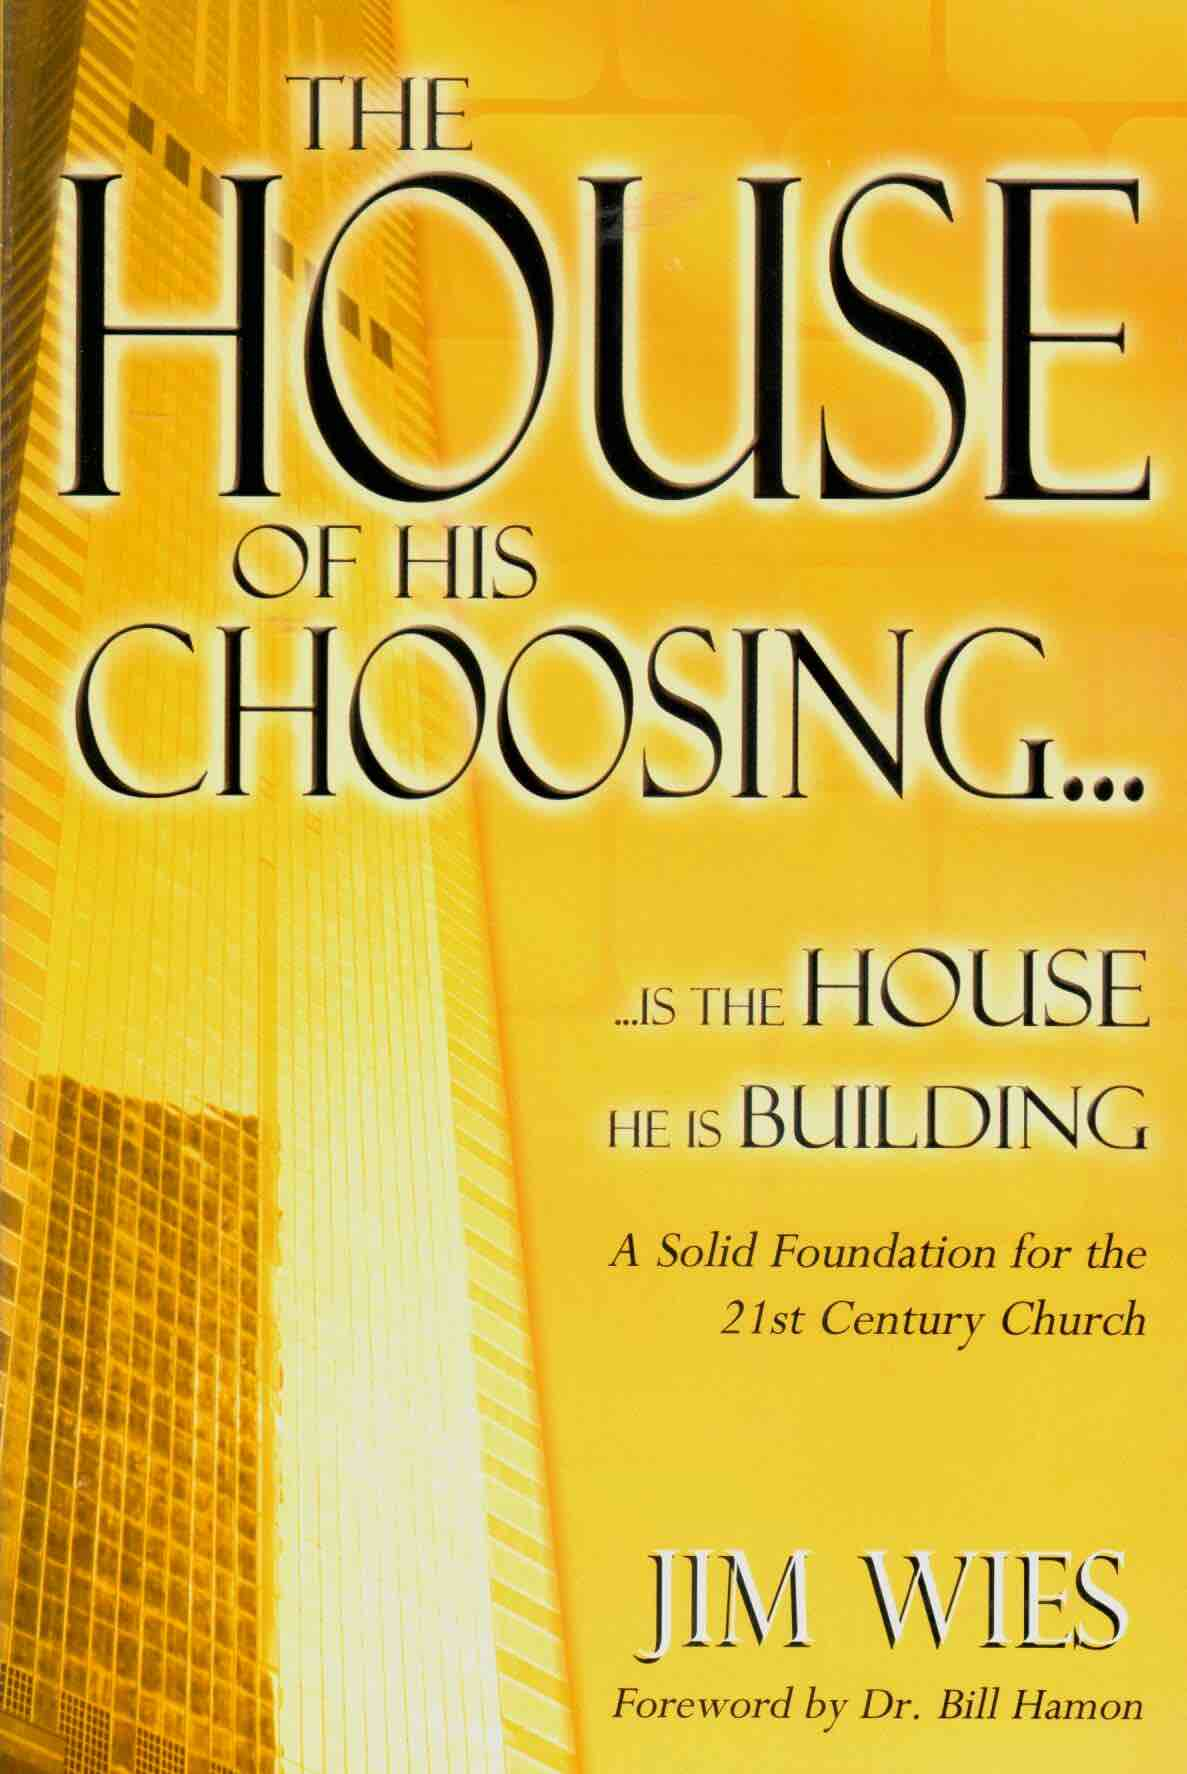 The House of His Choosing...